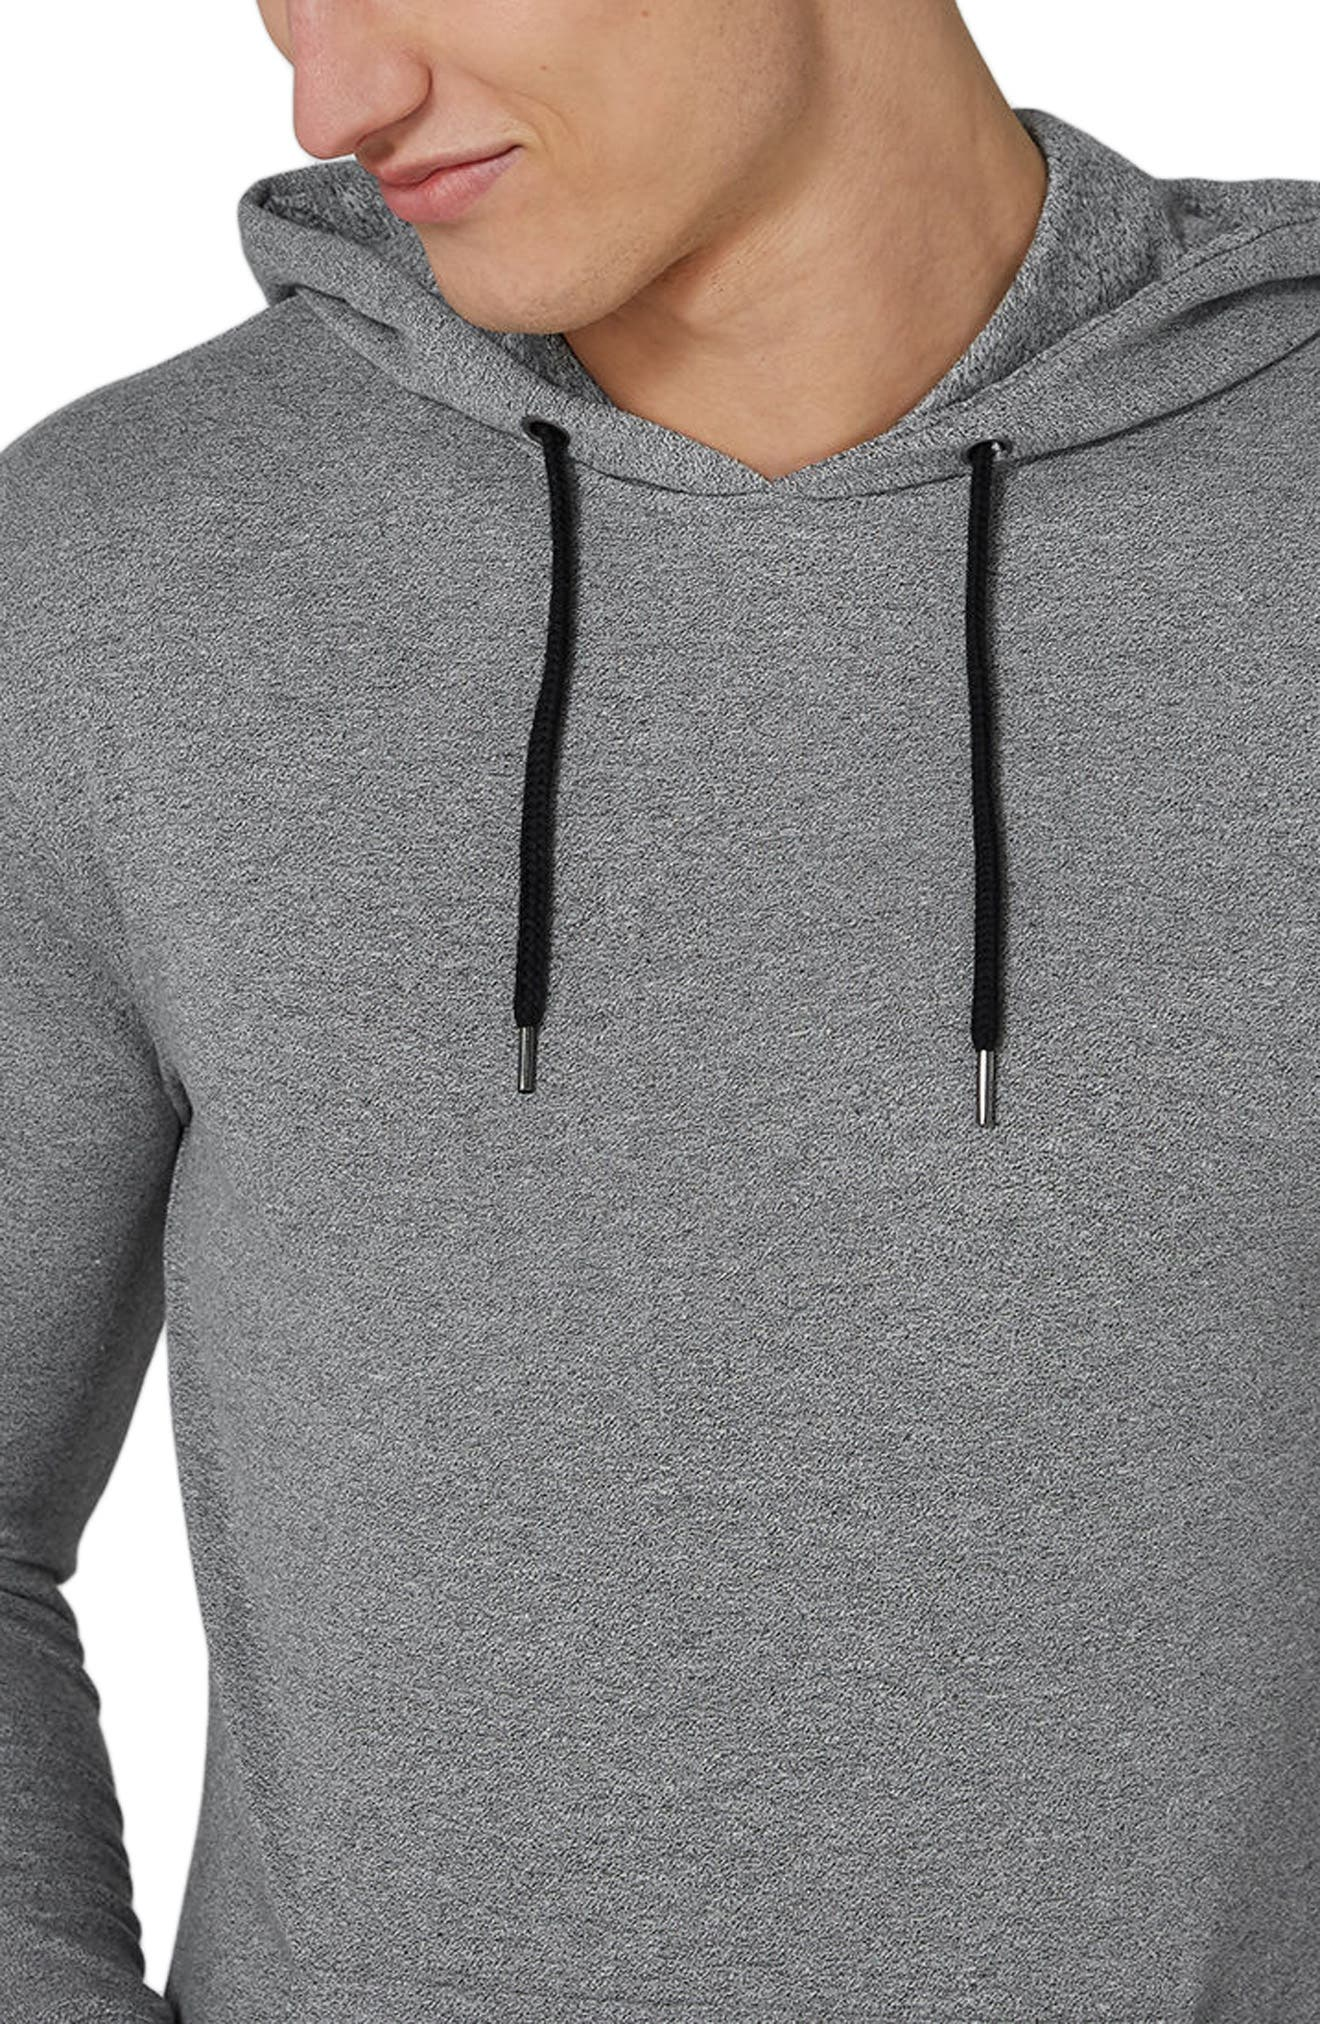 Muscle Fit Hoodie,                             Alternate thumbnail 3, color,                             020